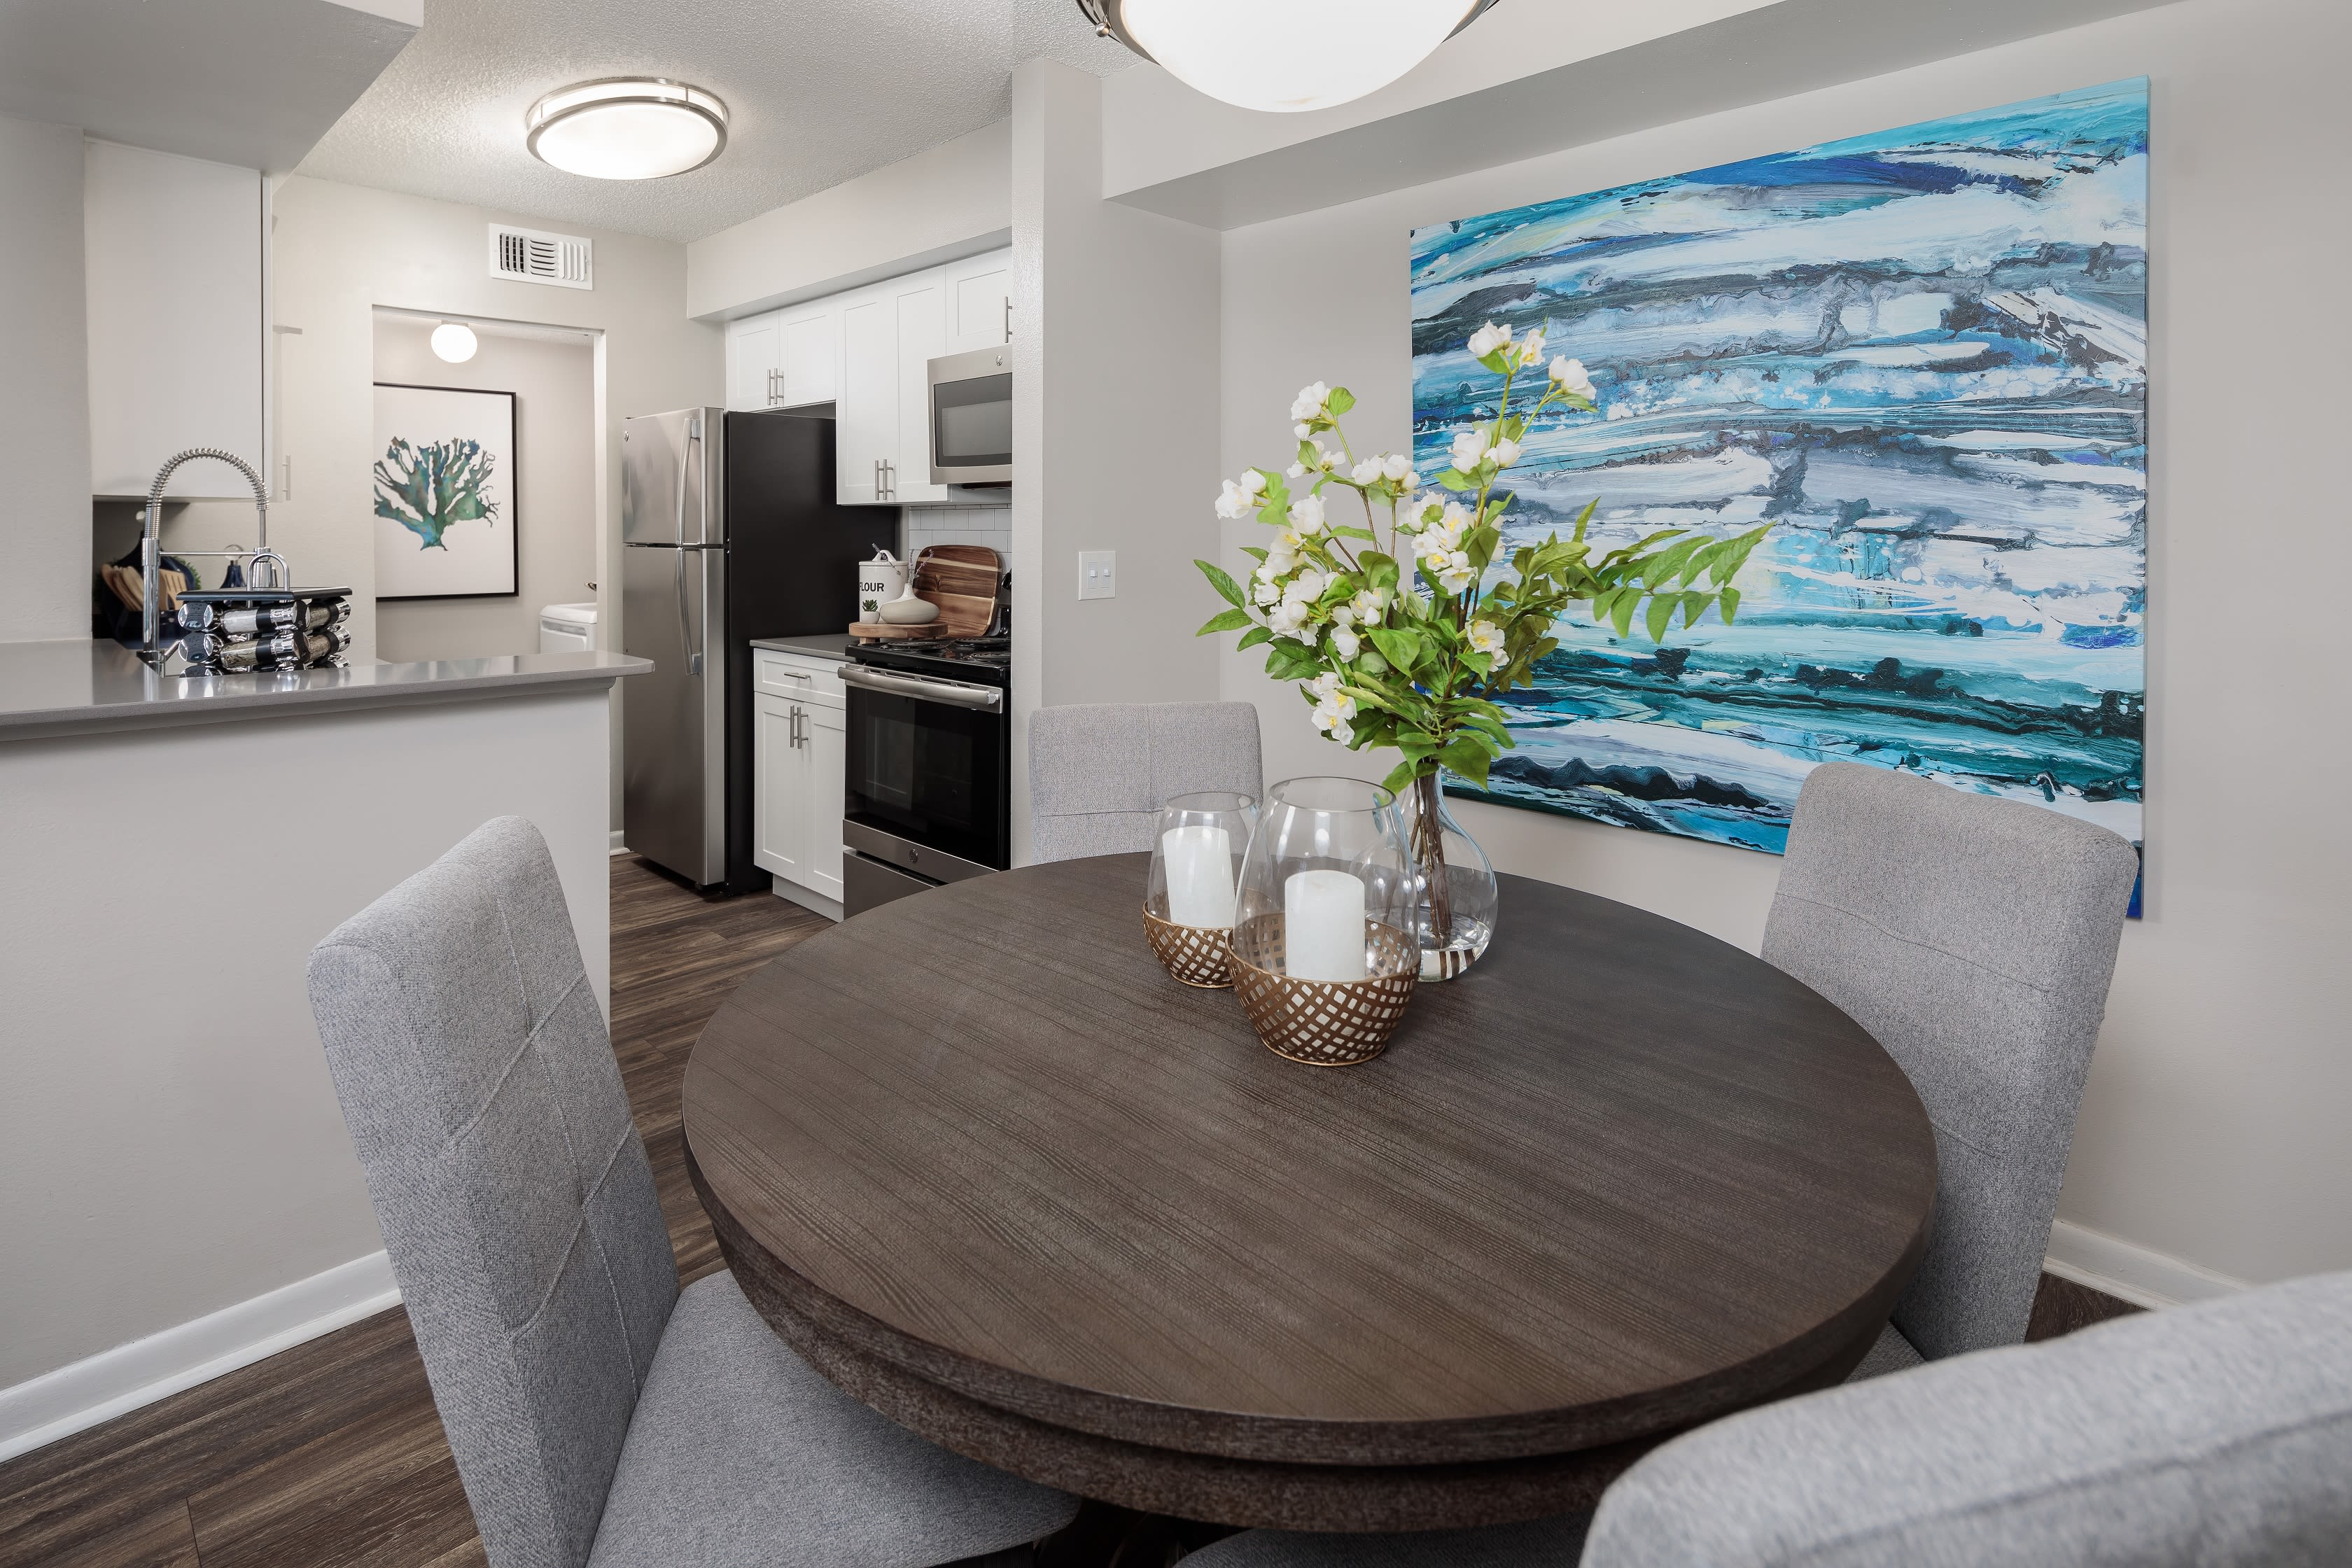 A dining area at Onyx Winter Park in Casselberry, FL